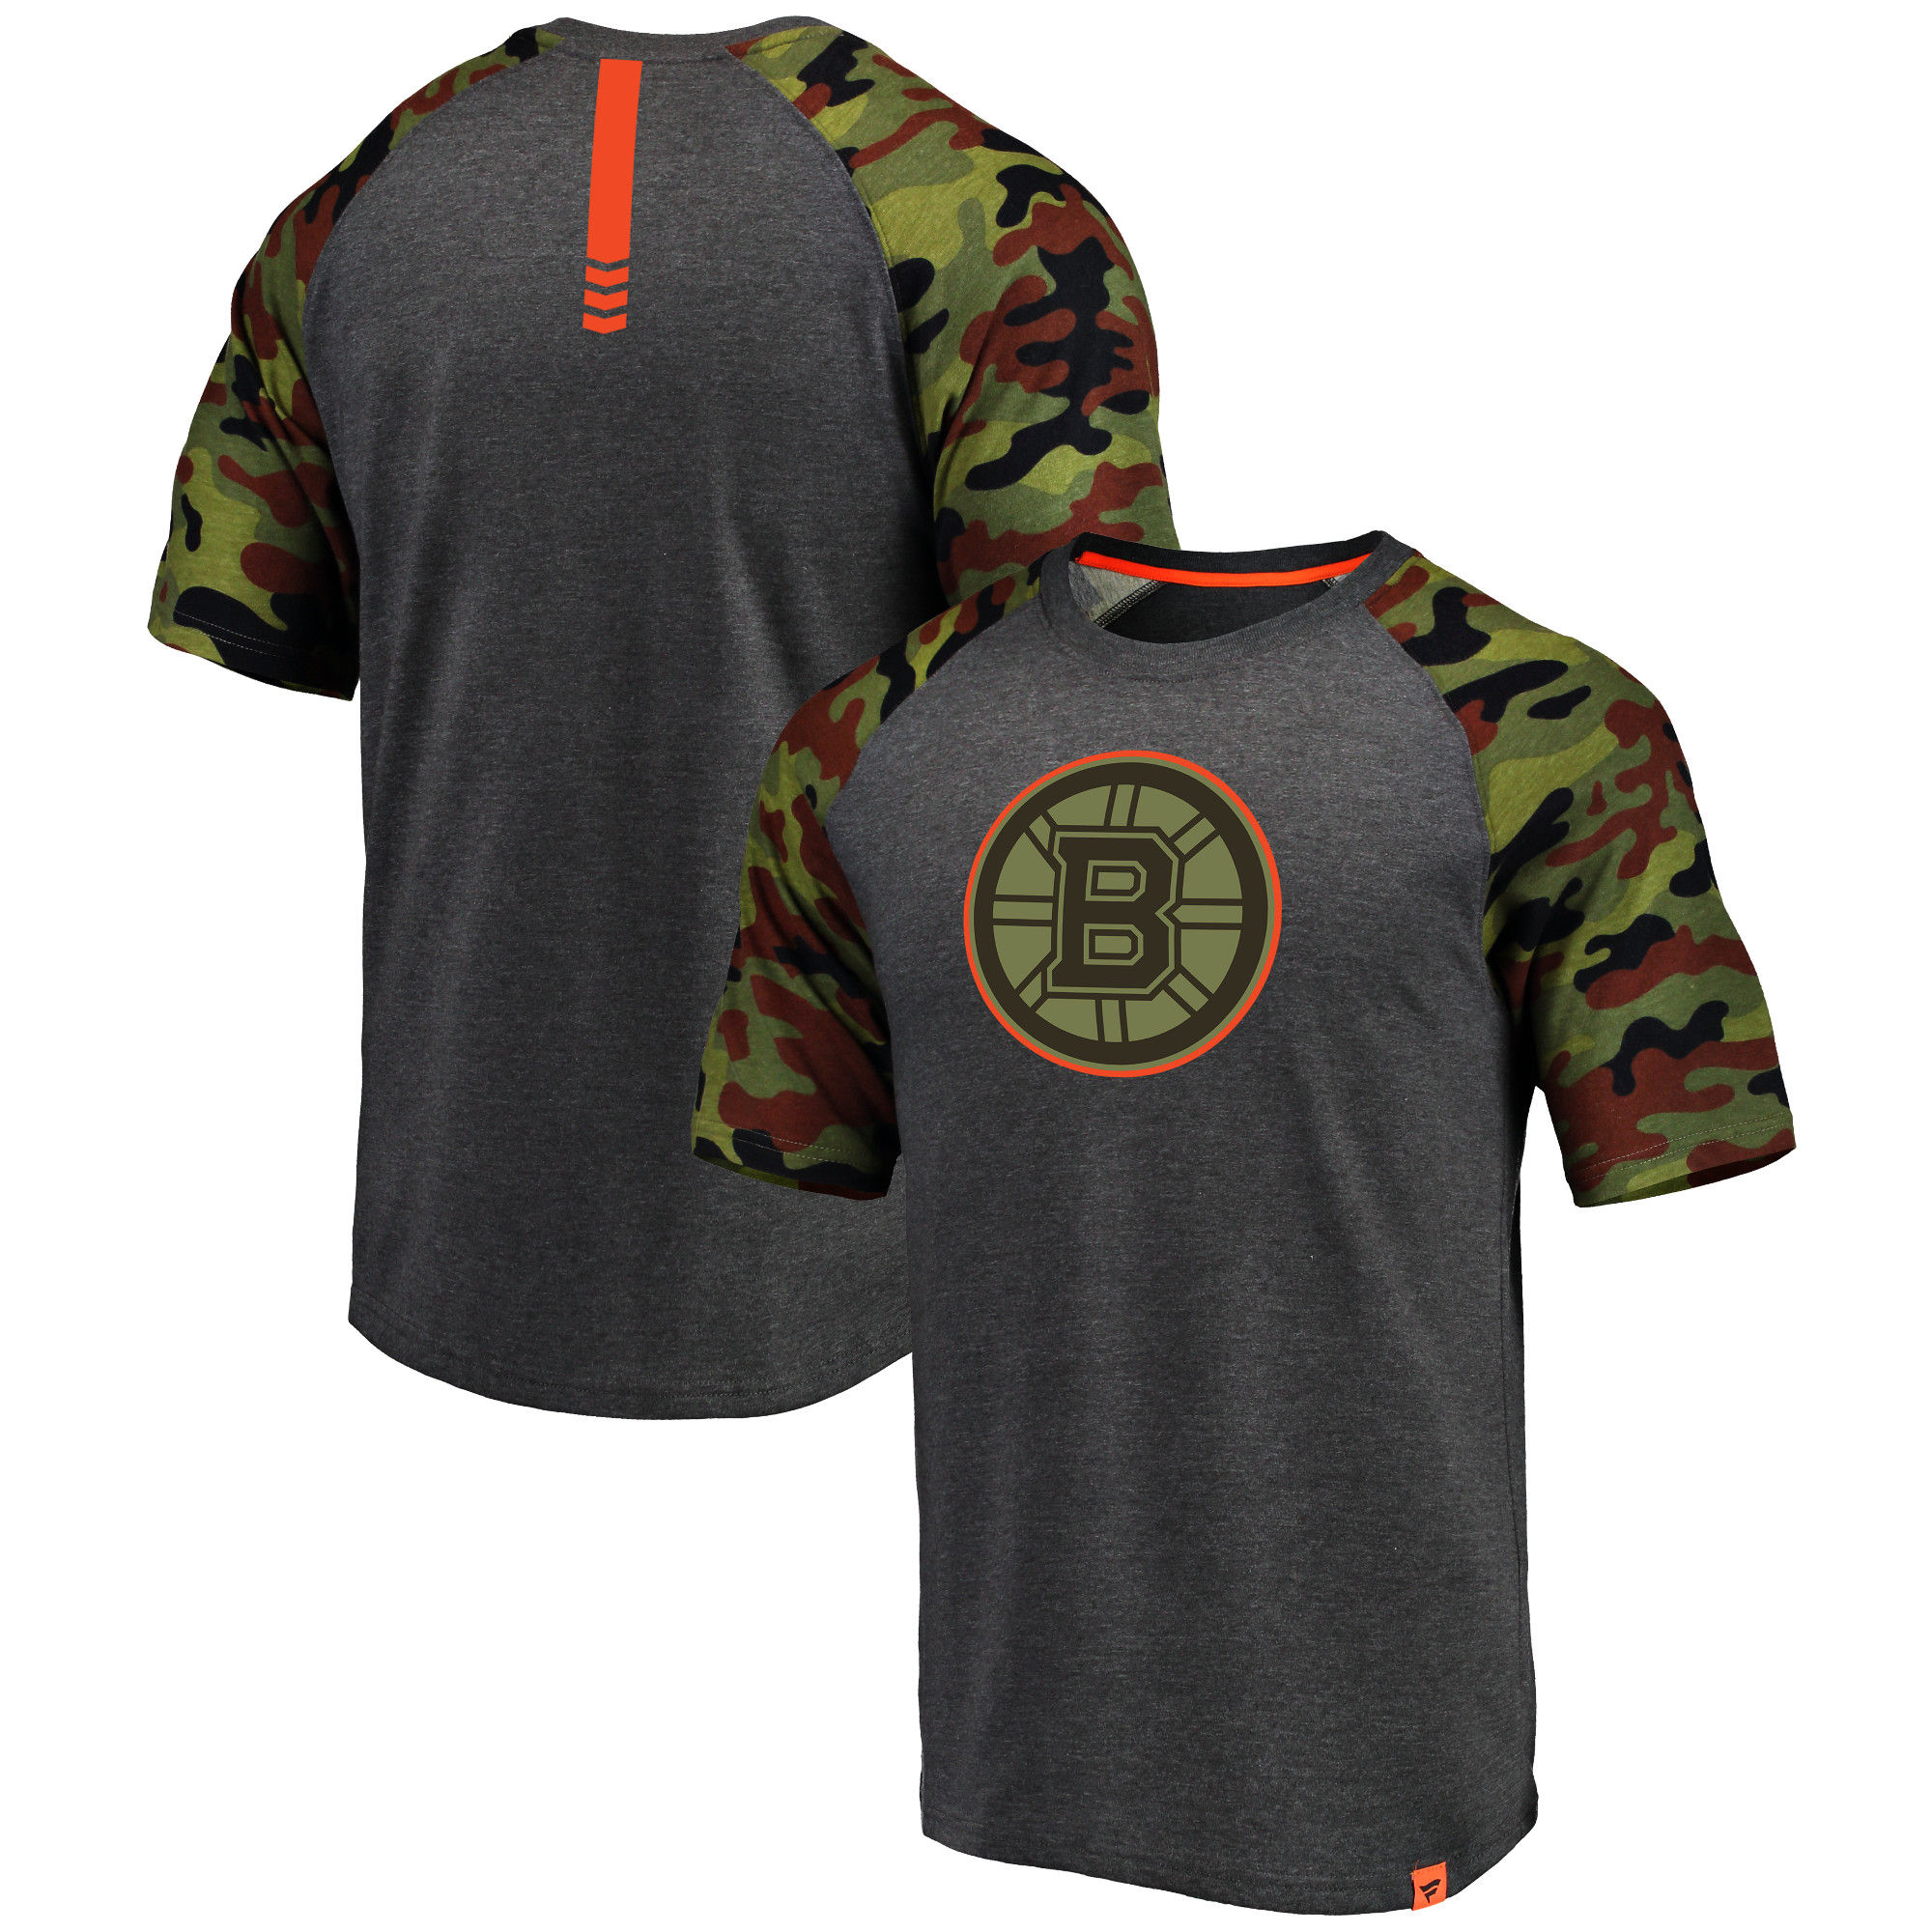 Boston Bruins Fanatics Branded Heathered Gray/Camo Recon Camo Raglan T-Shirt